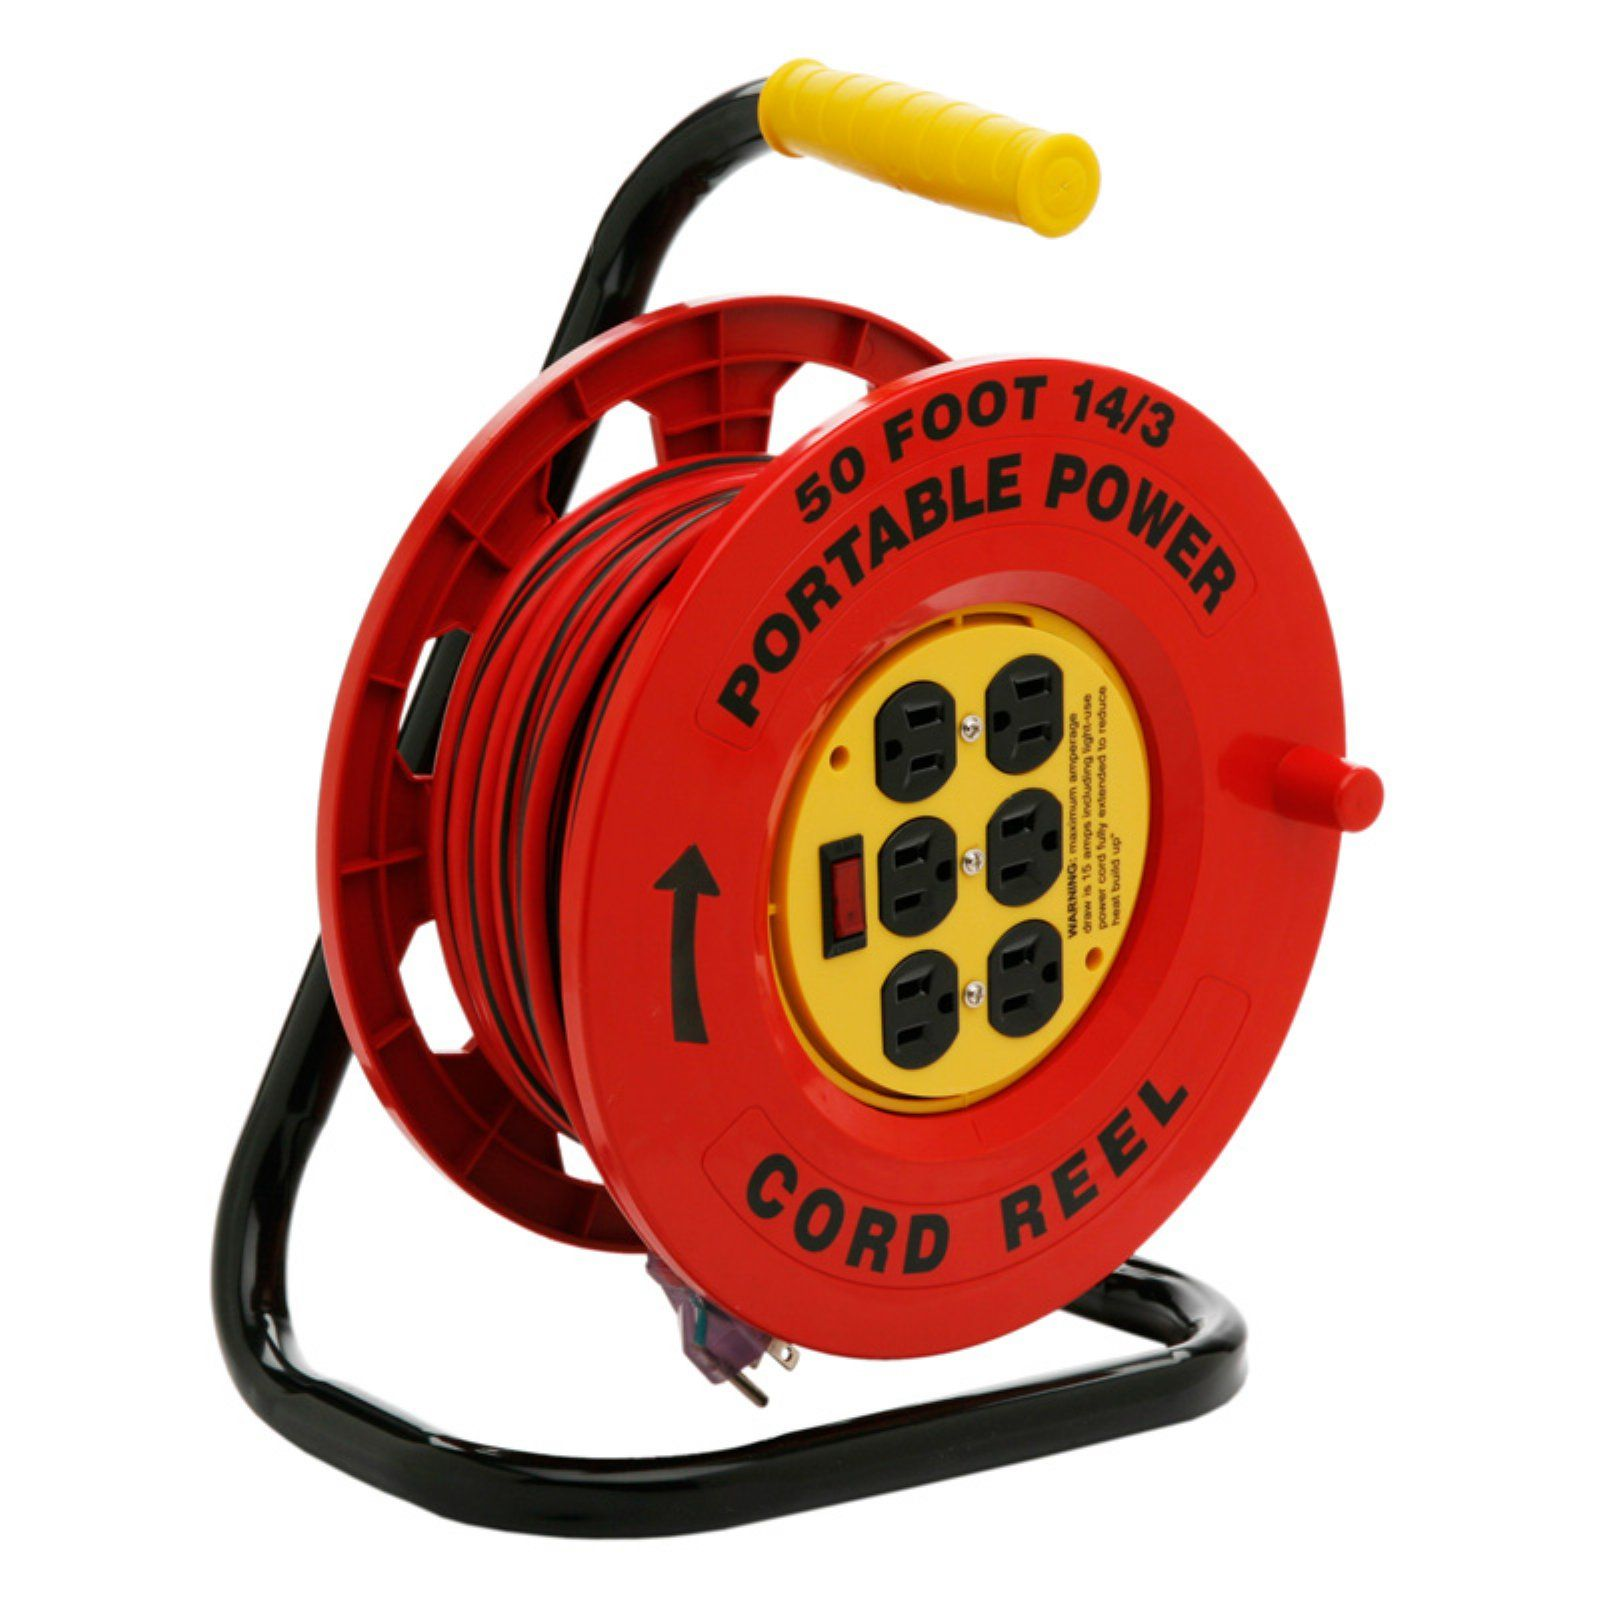 Designers Edge Cord Reel With 6 Outlets 50 Ft Power Station